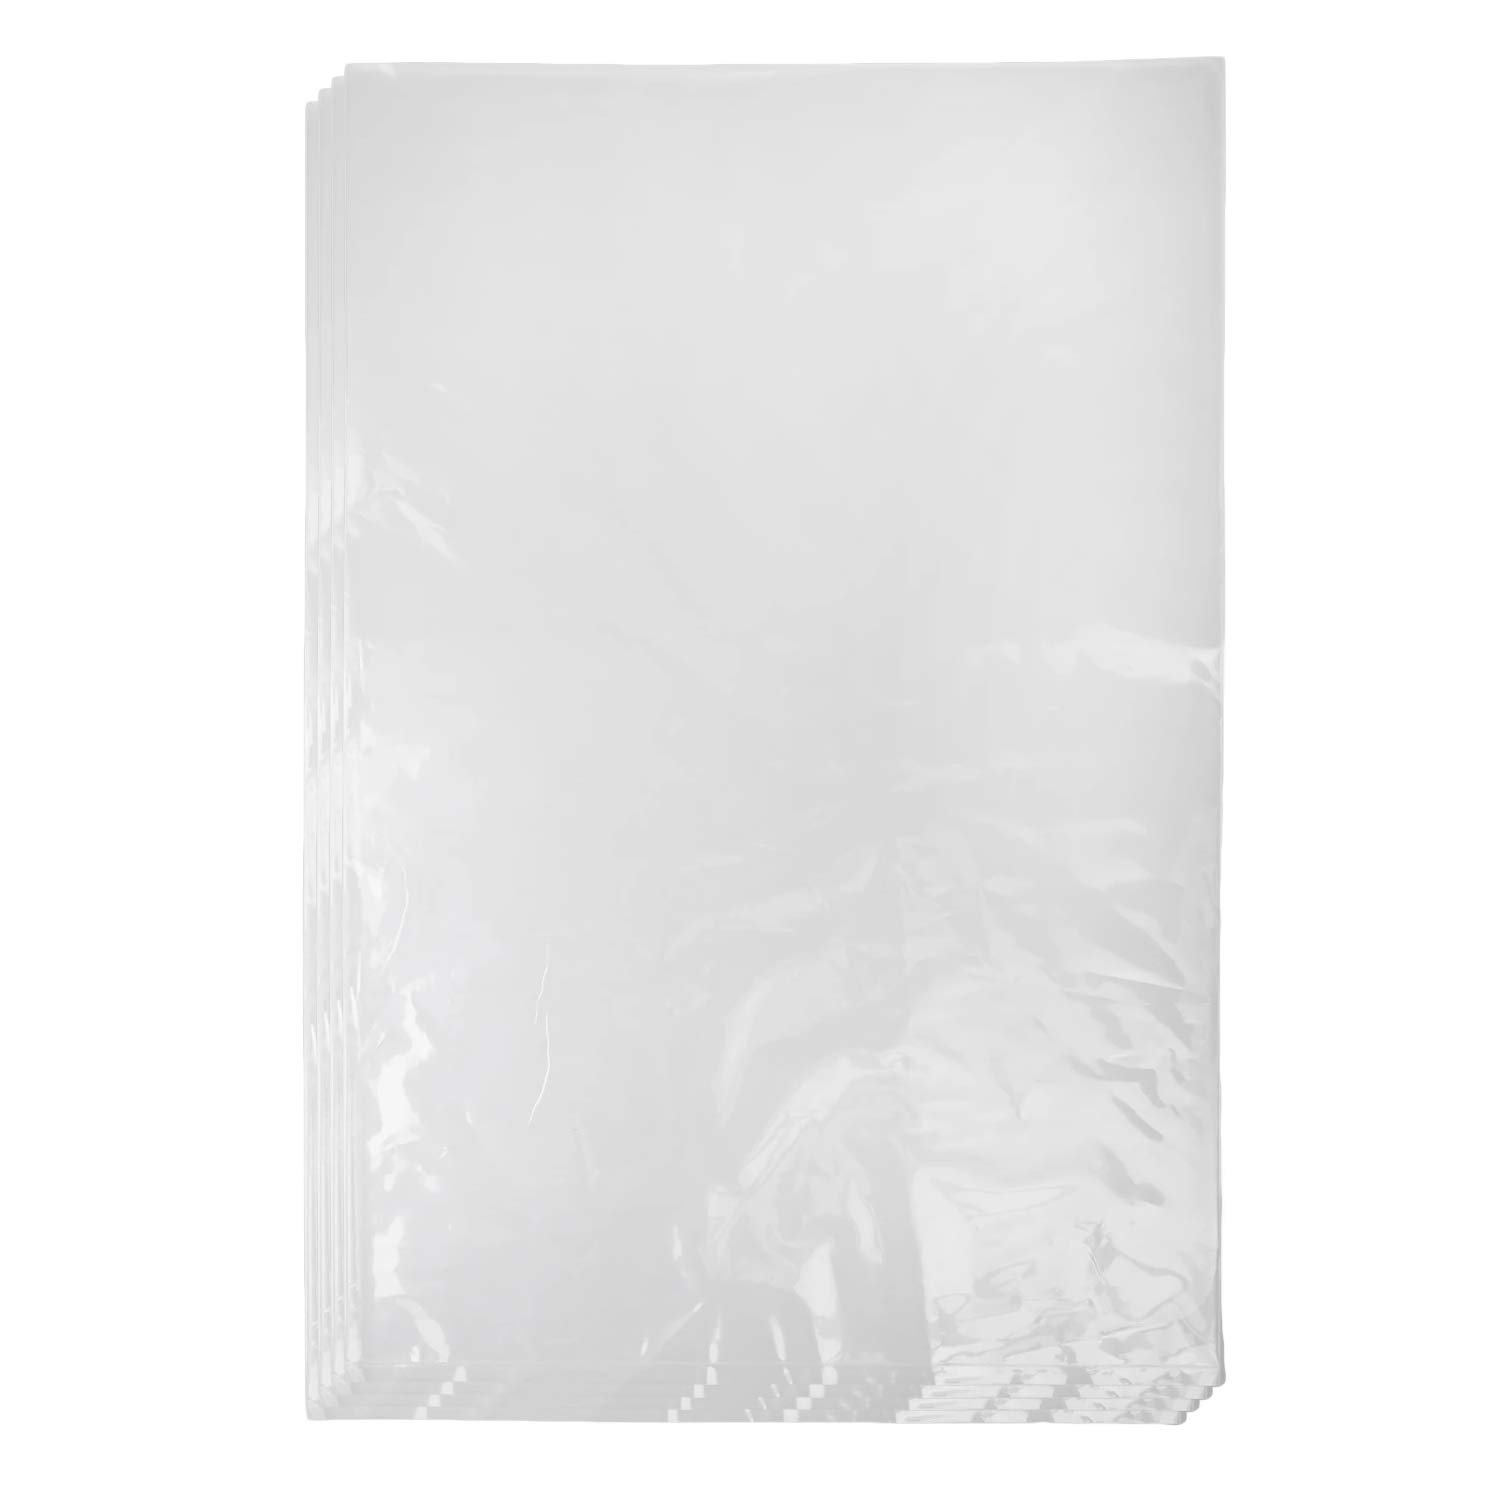 Nextphase Packaging Clear 1 Mil Food Safe Plastic Flat Open Ended Poly Bags for Storage, Packaging, and More - 9 x 12 Inch 100 Pack